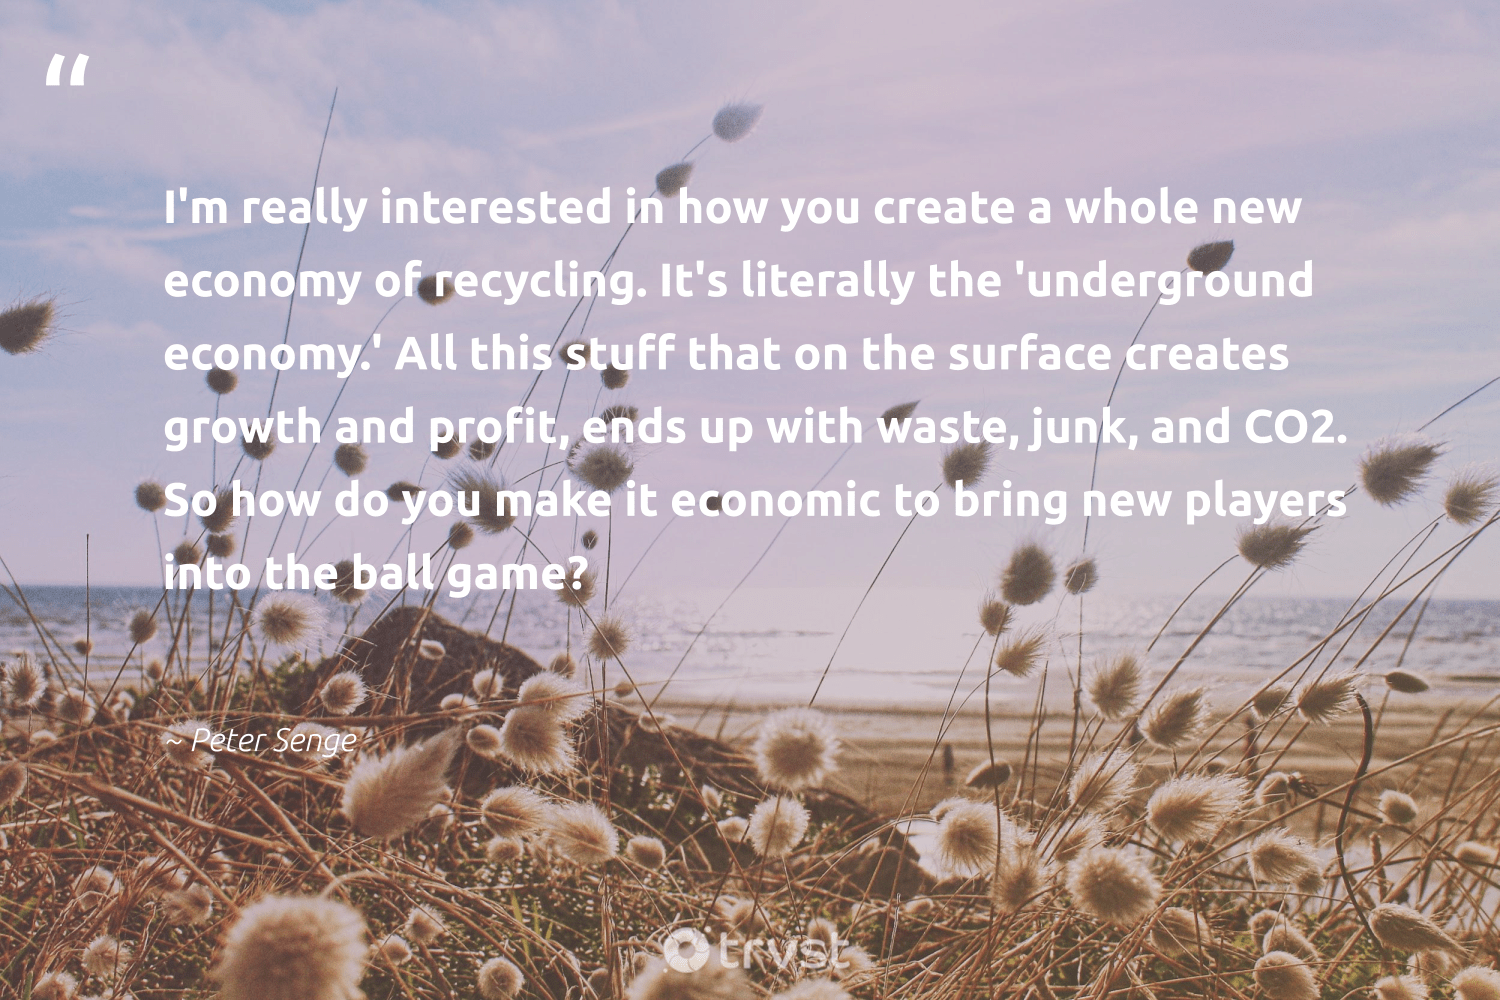 """""""I'm really interested in how you create a whole new economy of recycling. It's literally the 'underground economy.' All this stuff that on the surface creates growth and profit, ends up with waste, junk, and CO2. So how do you make it economic to bring new players into the ball game?""""  - Peter Senge #trvst #quotes #recycling #waste #co2 #refurbished #greenliving #planetearthfirst #socialchange #upcycling #wasteless #loveourplanet"""